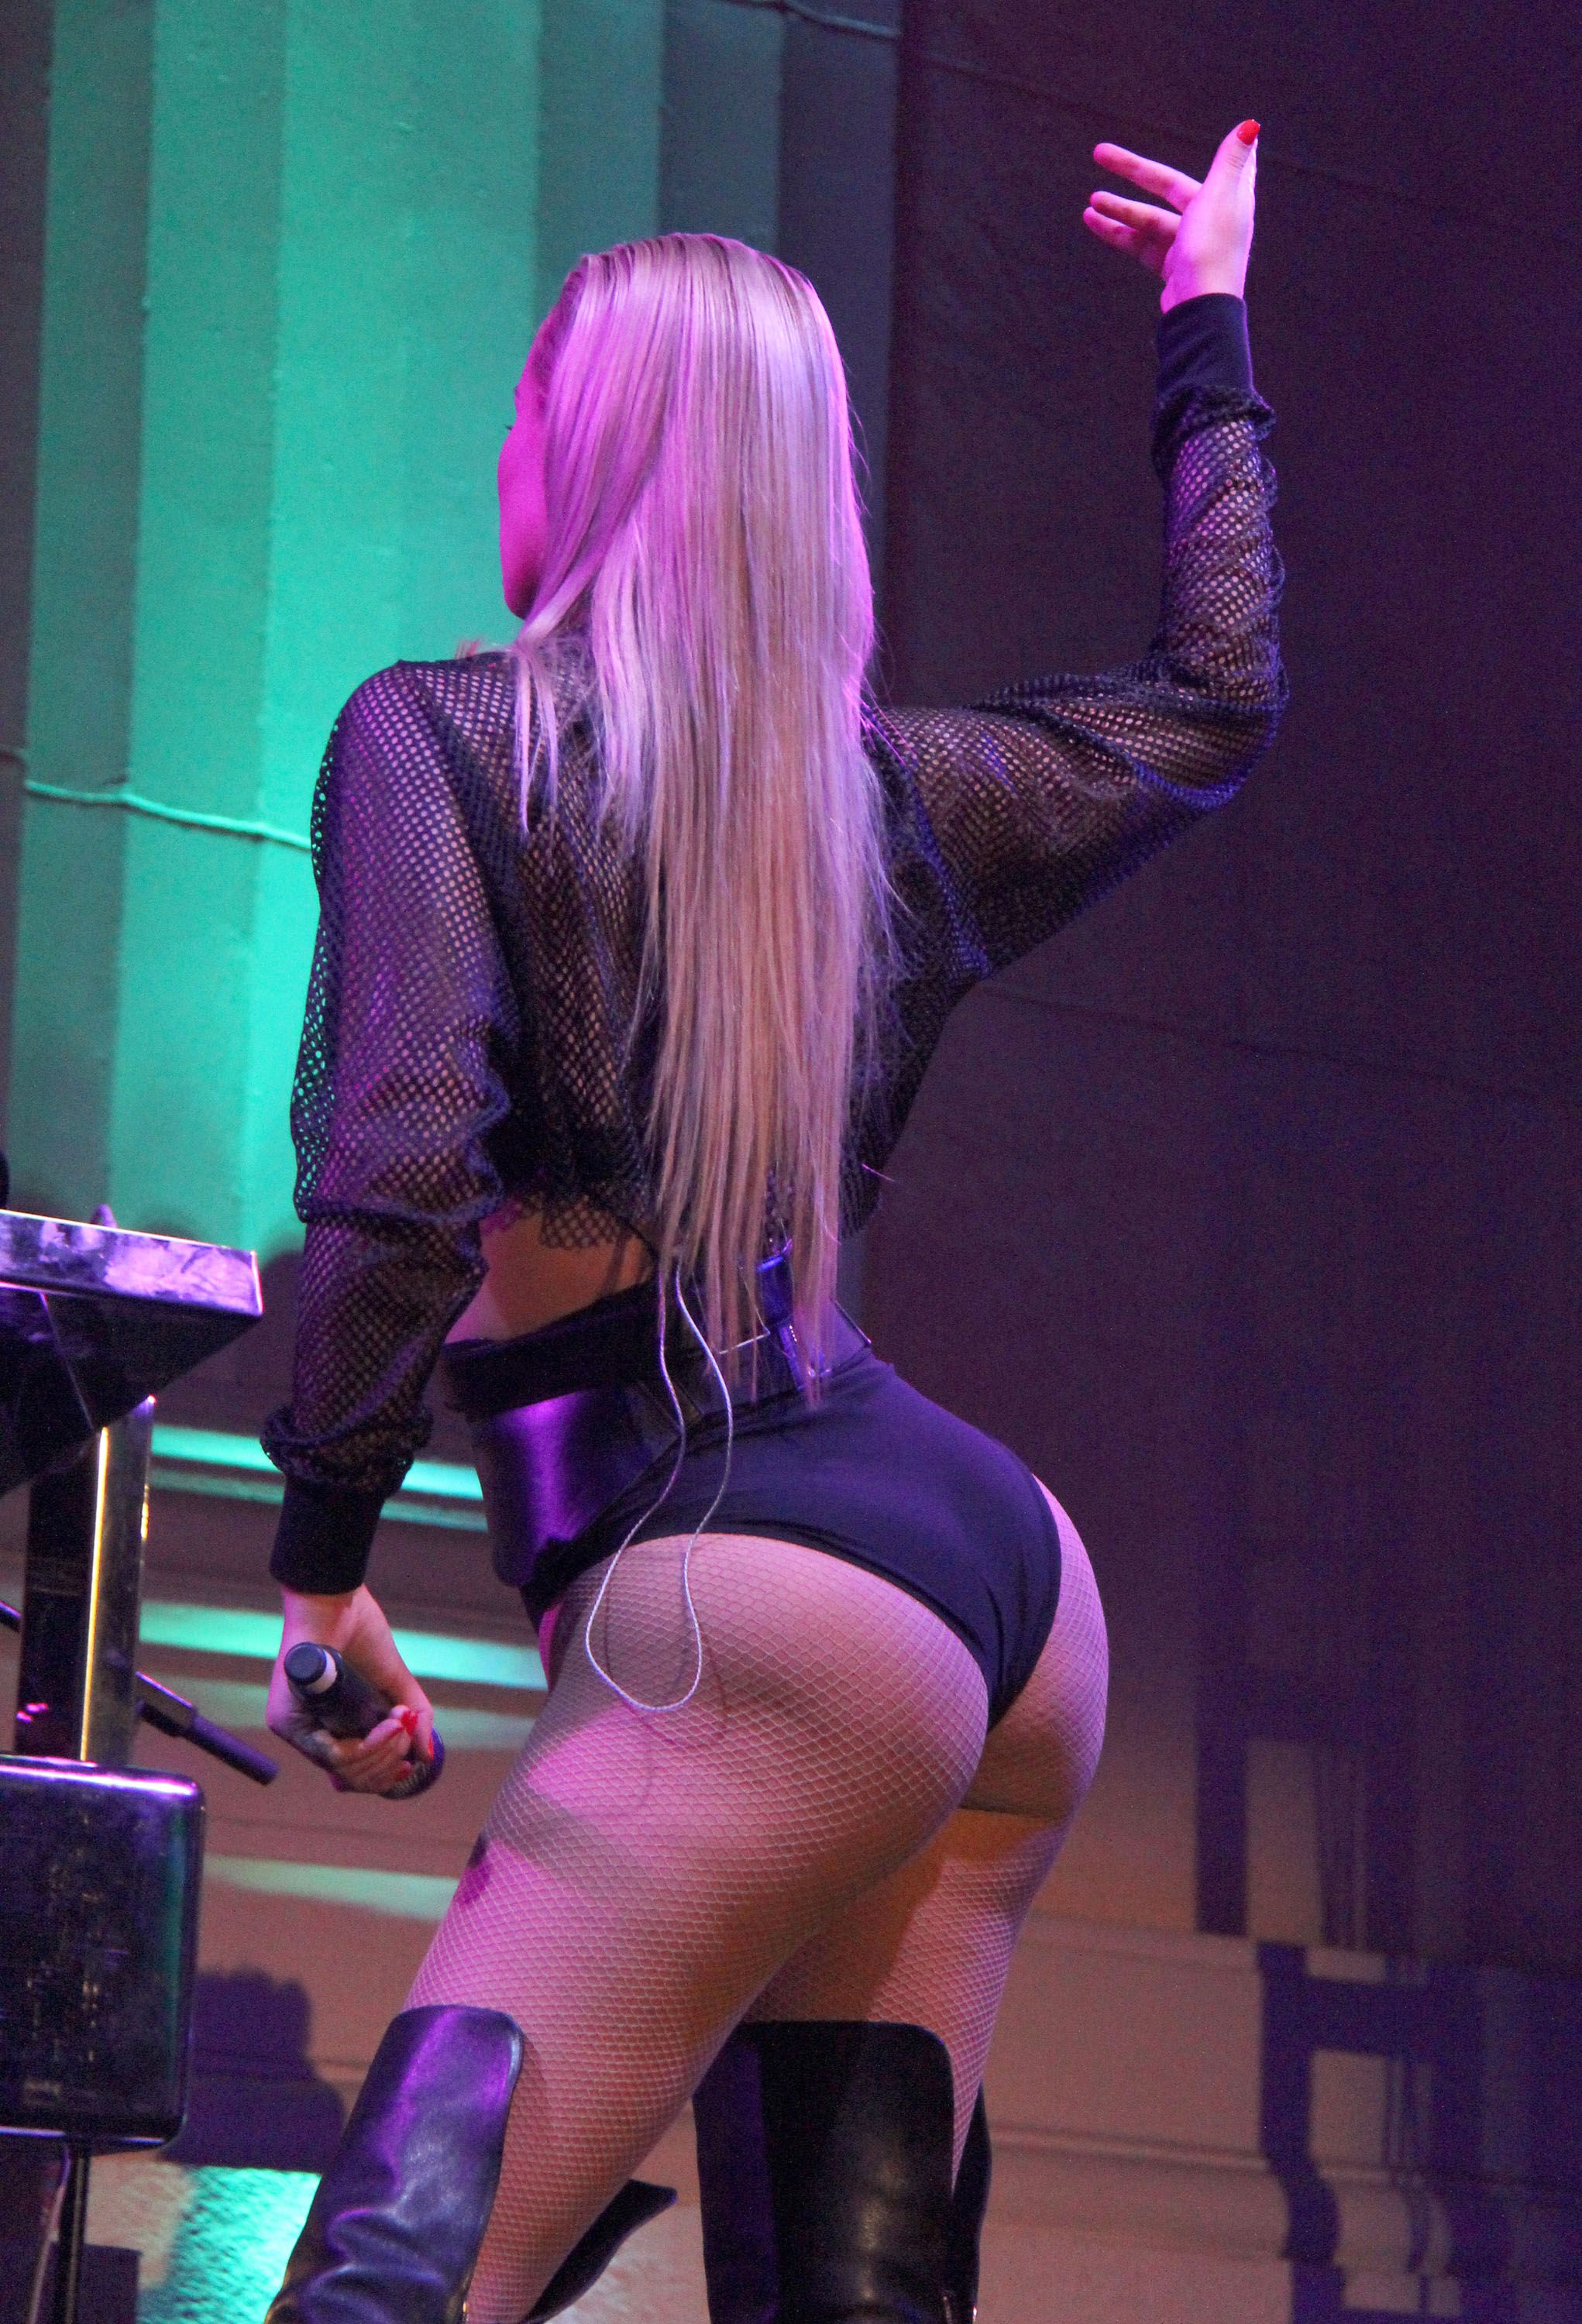 [Amateur Ass] Iggy Azalea's famous behind (x-post from r/OnStageGW)